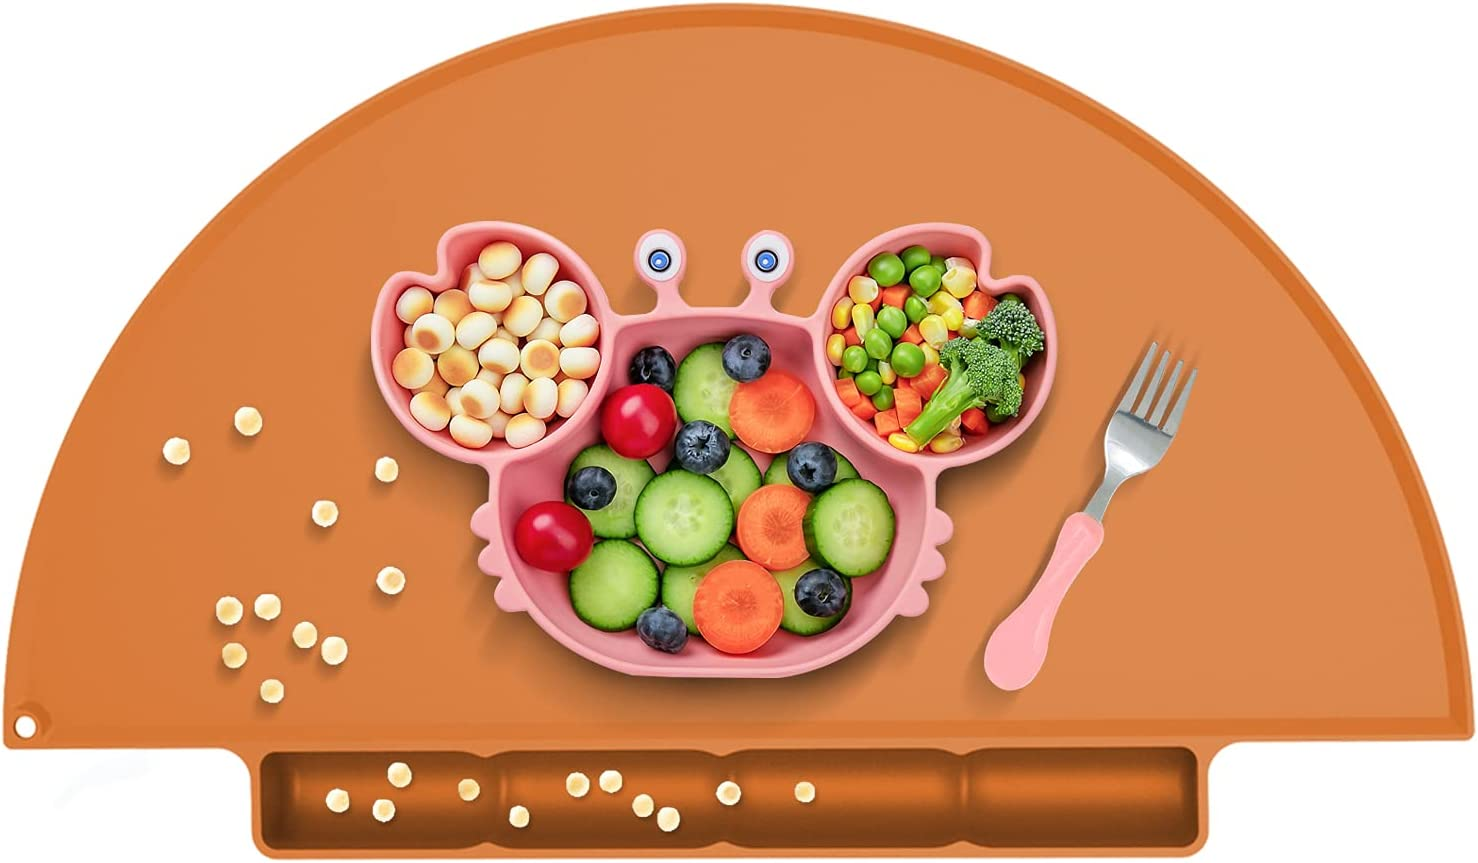 Kids Placemat with Suction Cup, Food Catching Baby Place Mat, Non-Slip, Food Grade Silicone, Unique Raised Edge, Spill Proof Accident Tray (Orange)